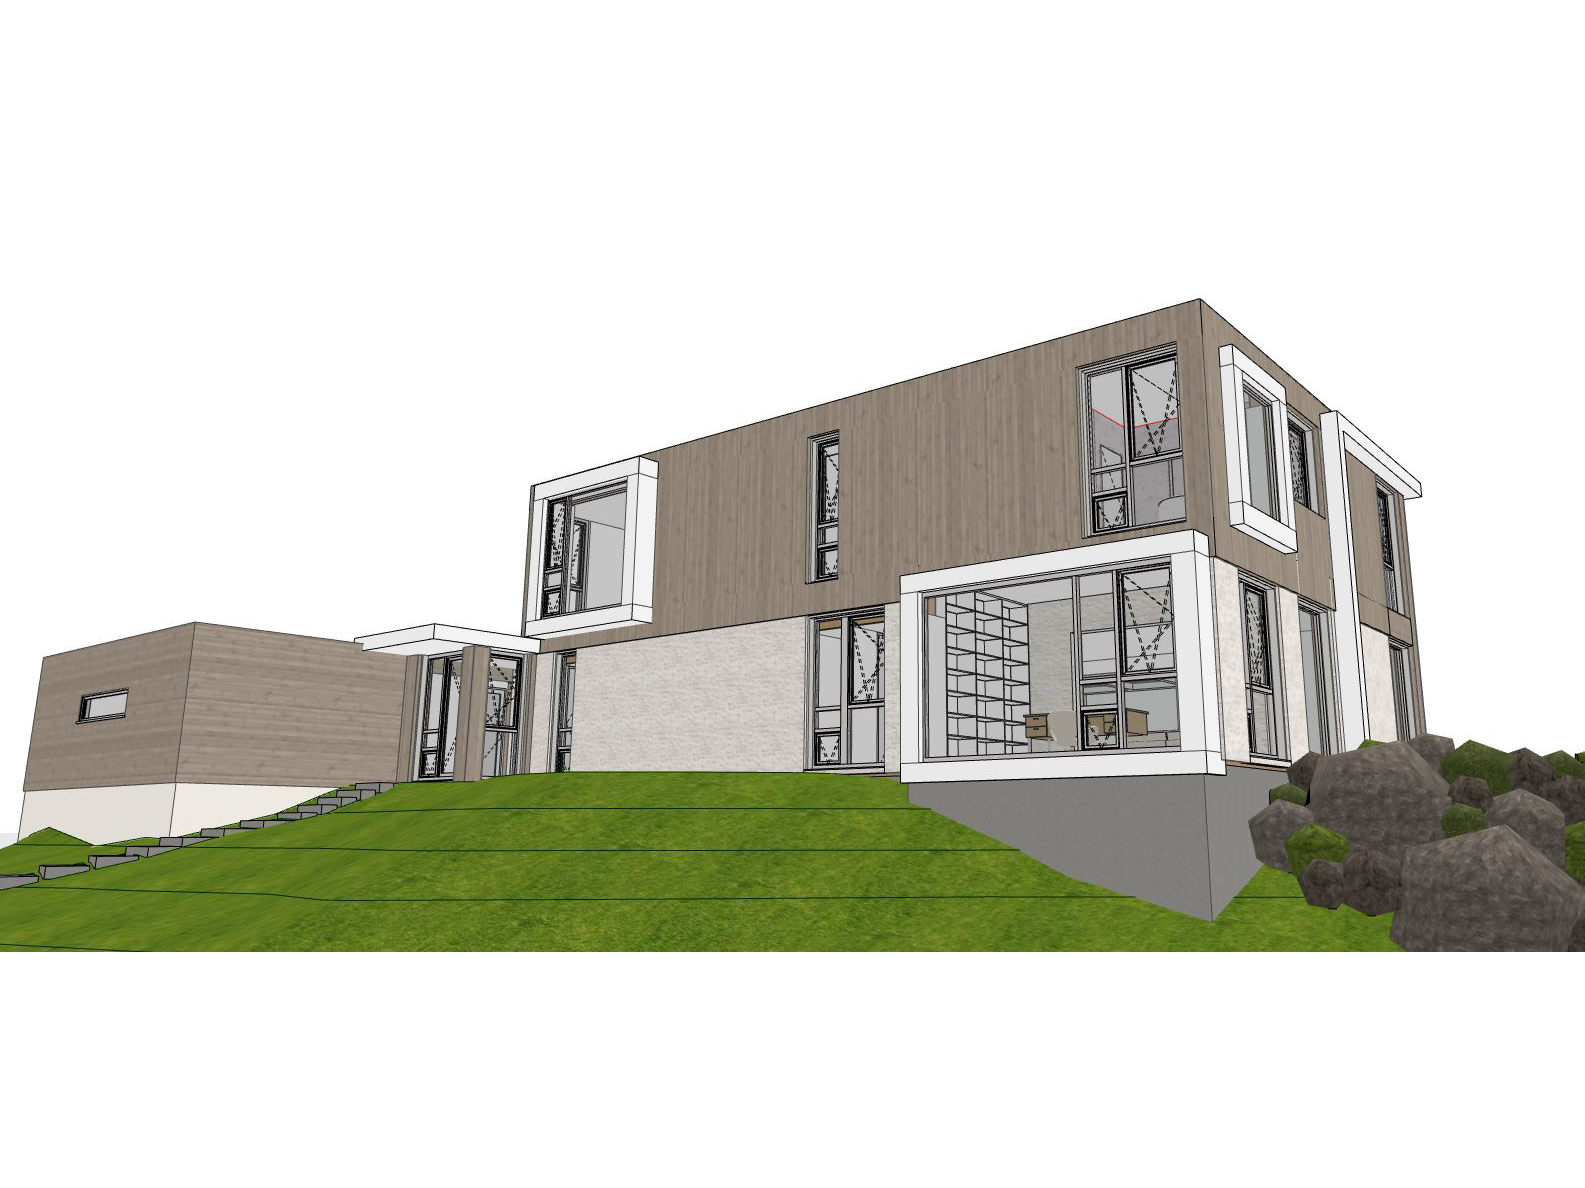 Coastal Modern in progress gallery 1.jpg